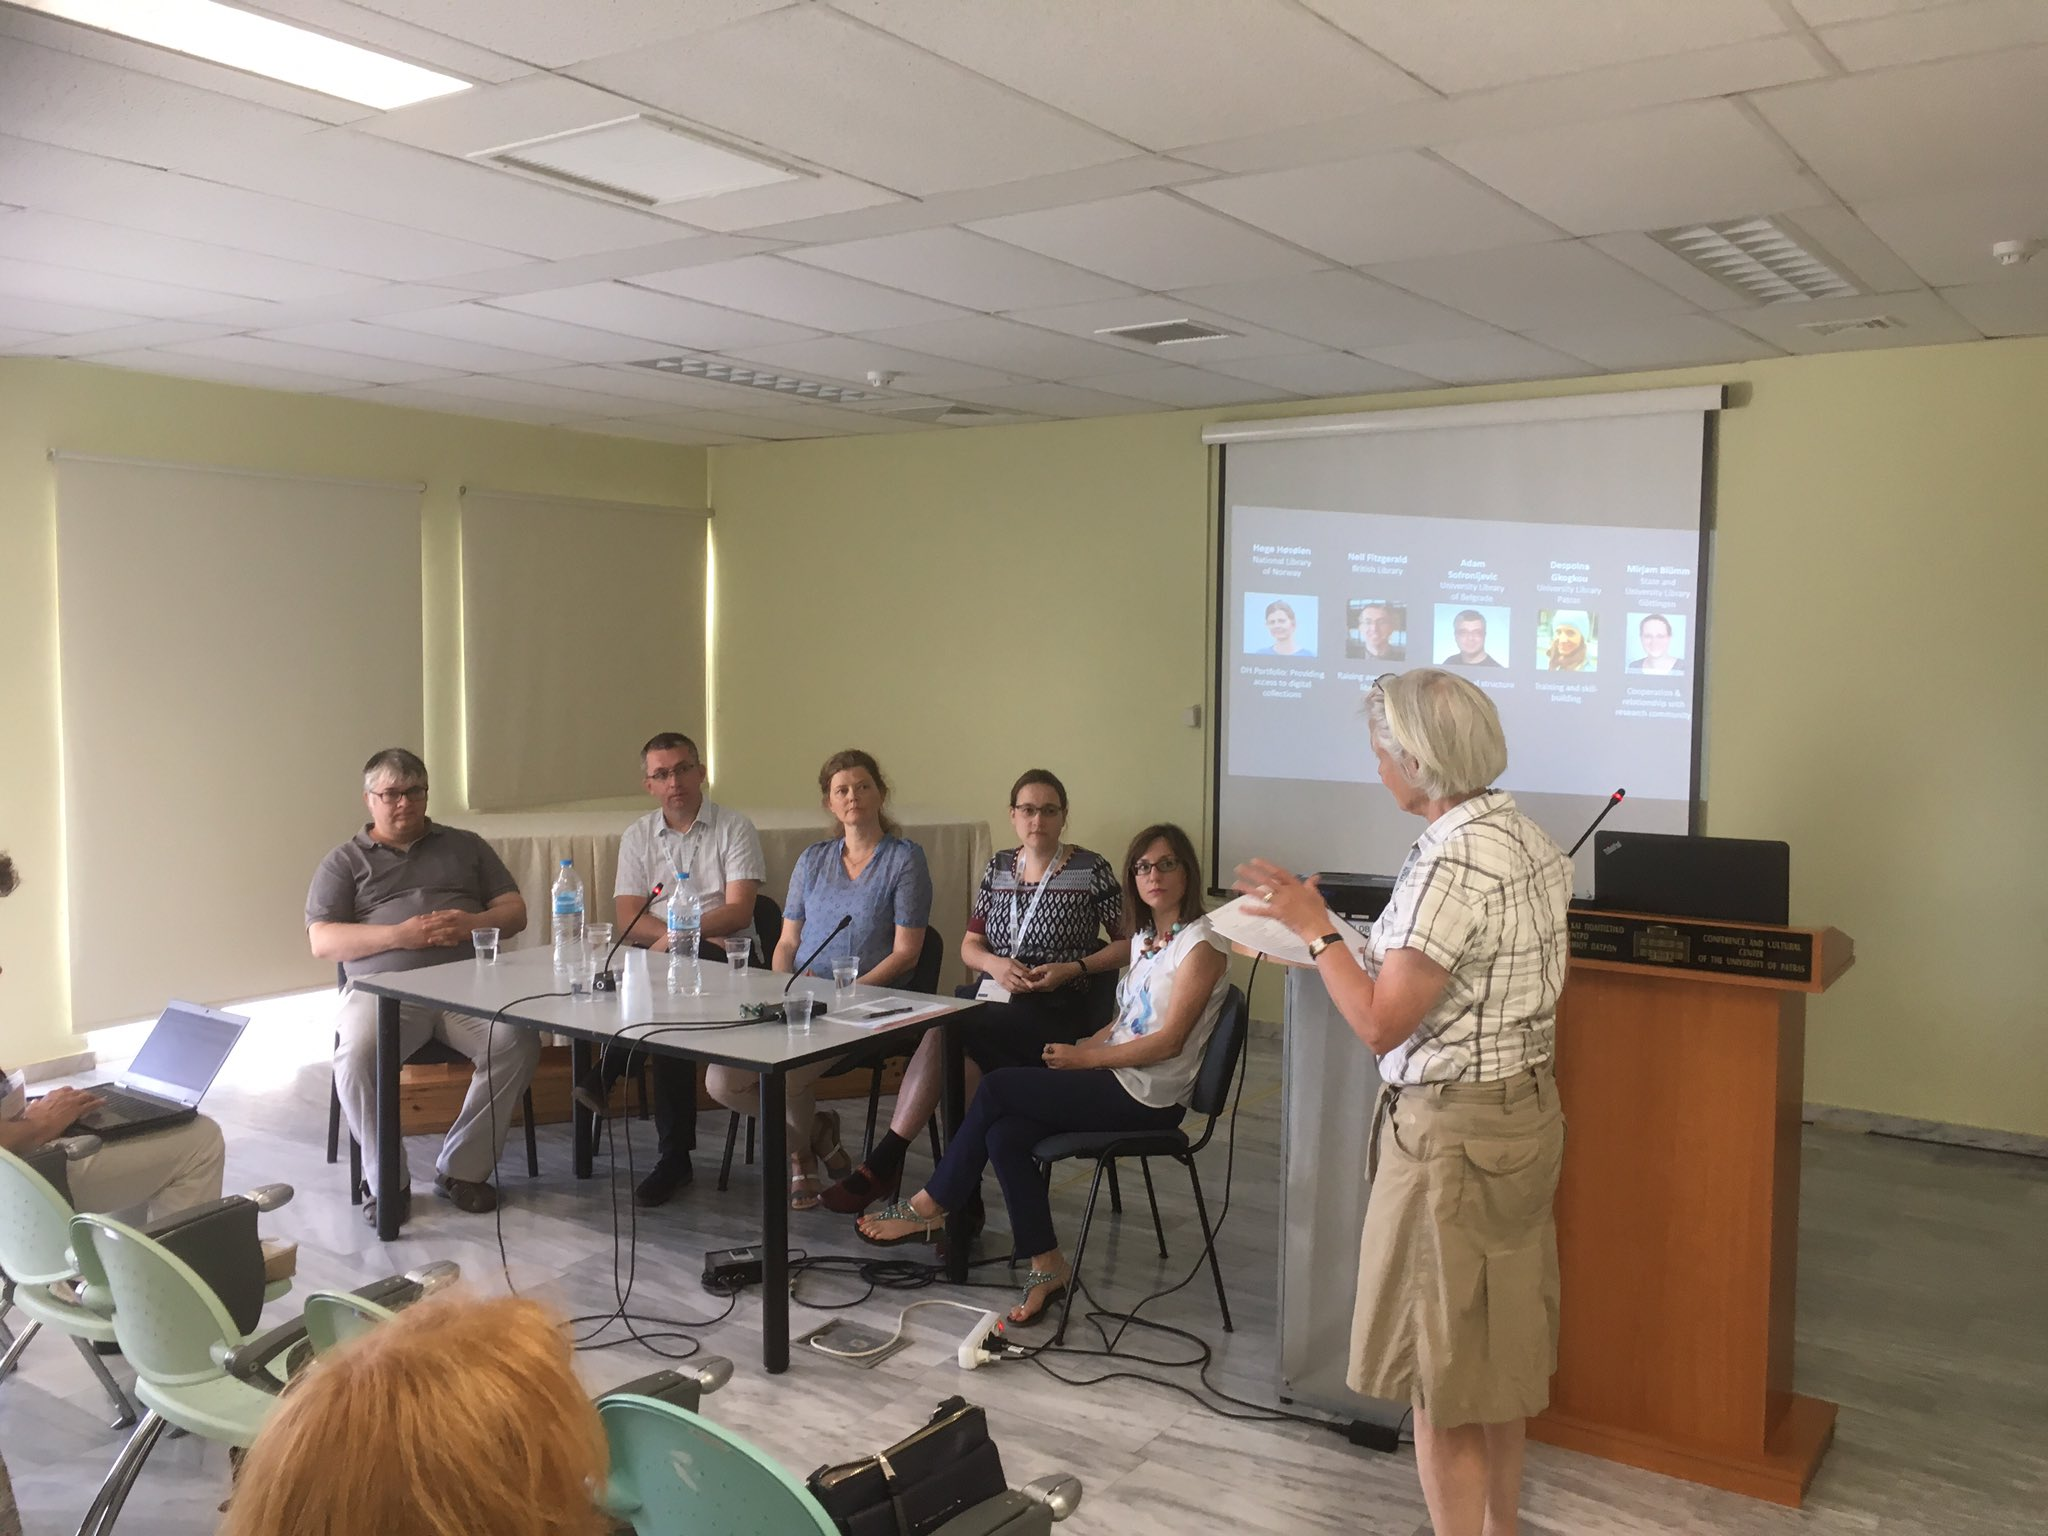 Panel in session! #dhandlib #liber2017 'If you had to choose one thing to advise others, what would it be?' @adamsofronije says #OCR & #TDM https://t.co/Kb7amoH2Tl